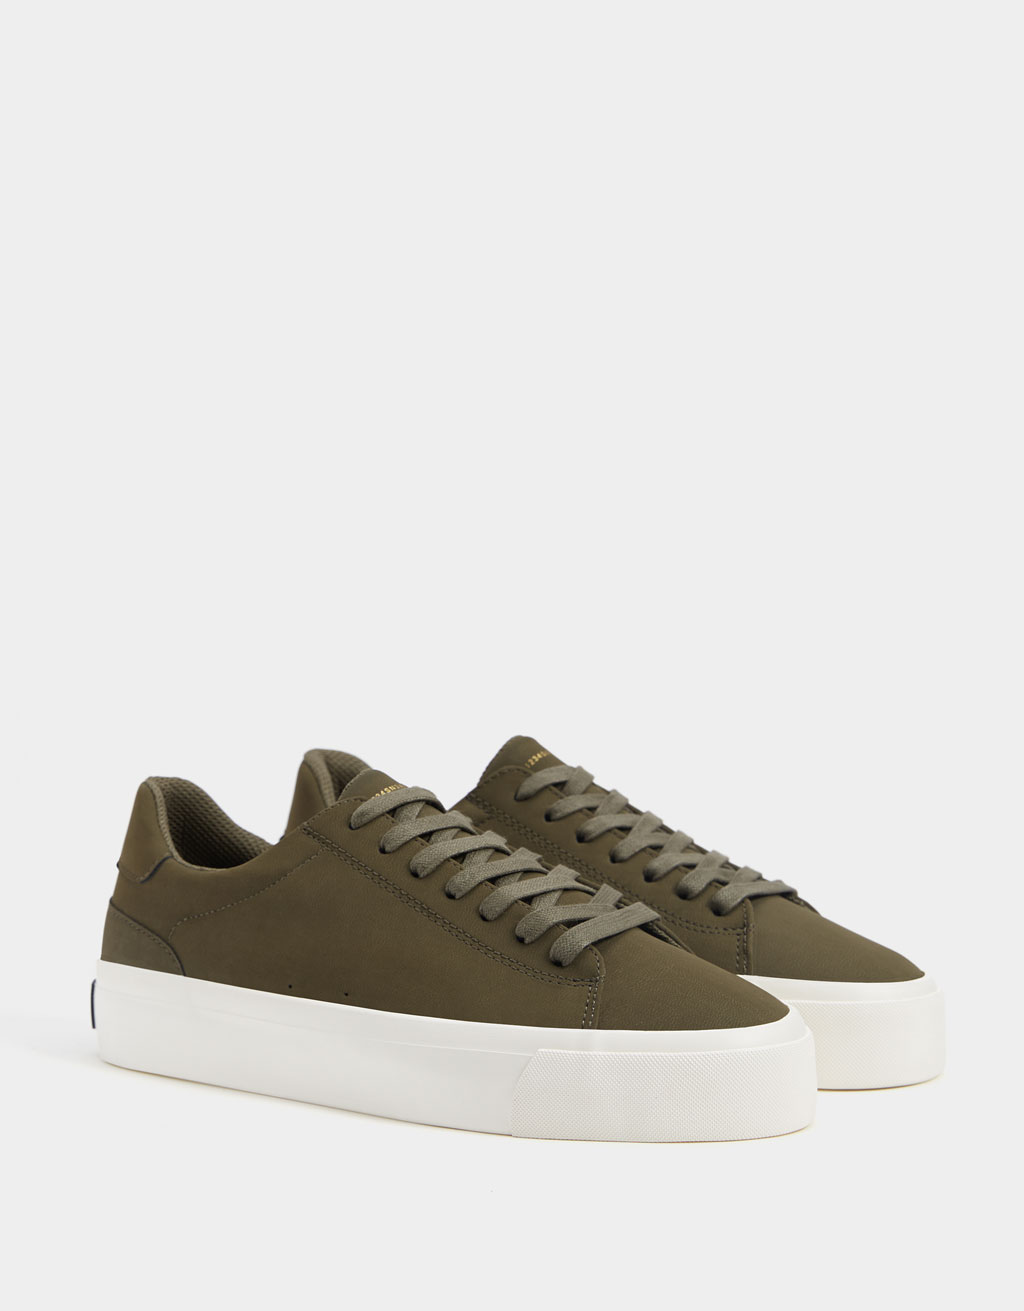 Men's khaki lace-up trainers